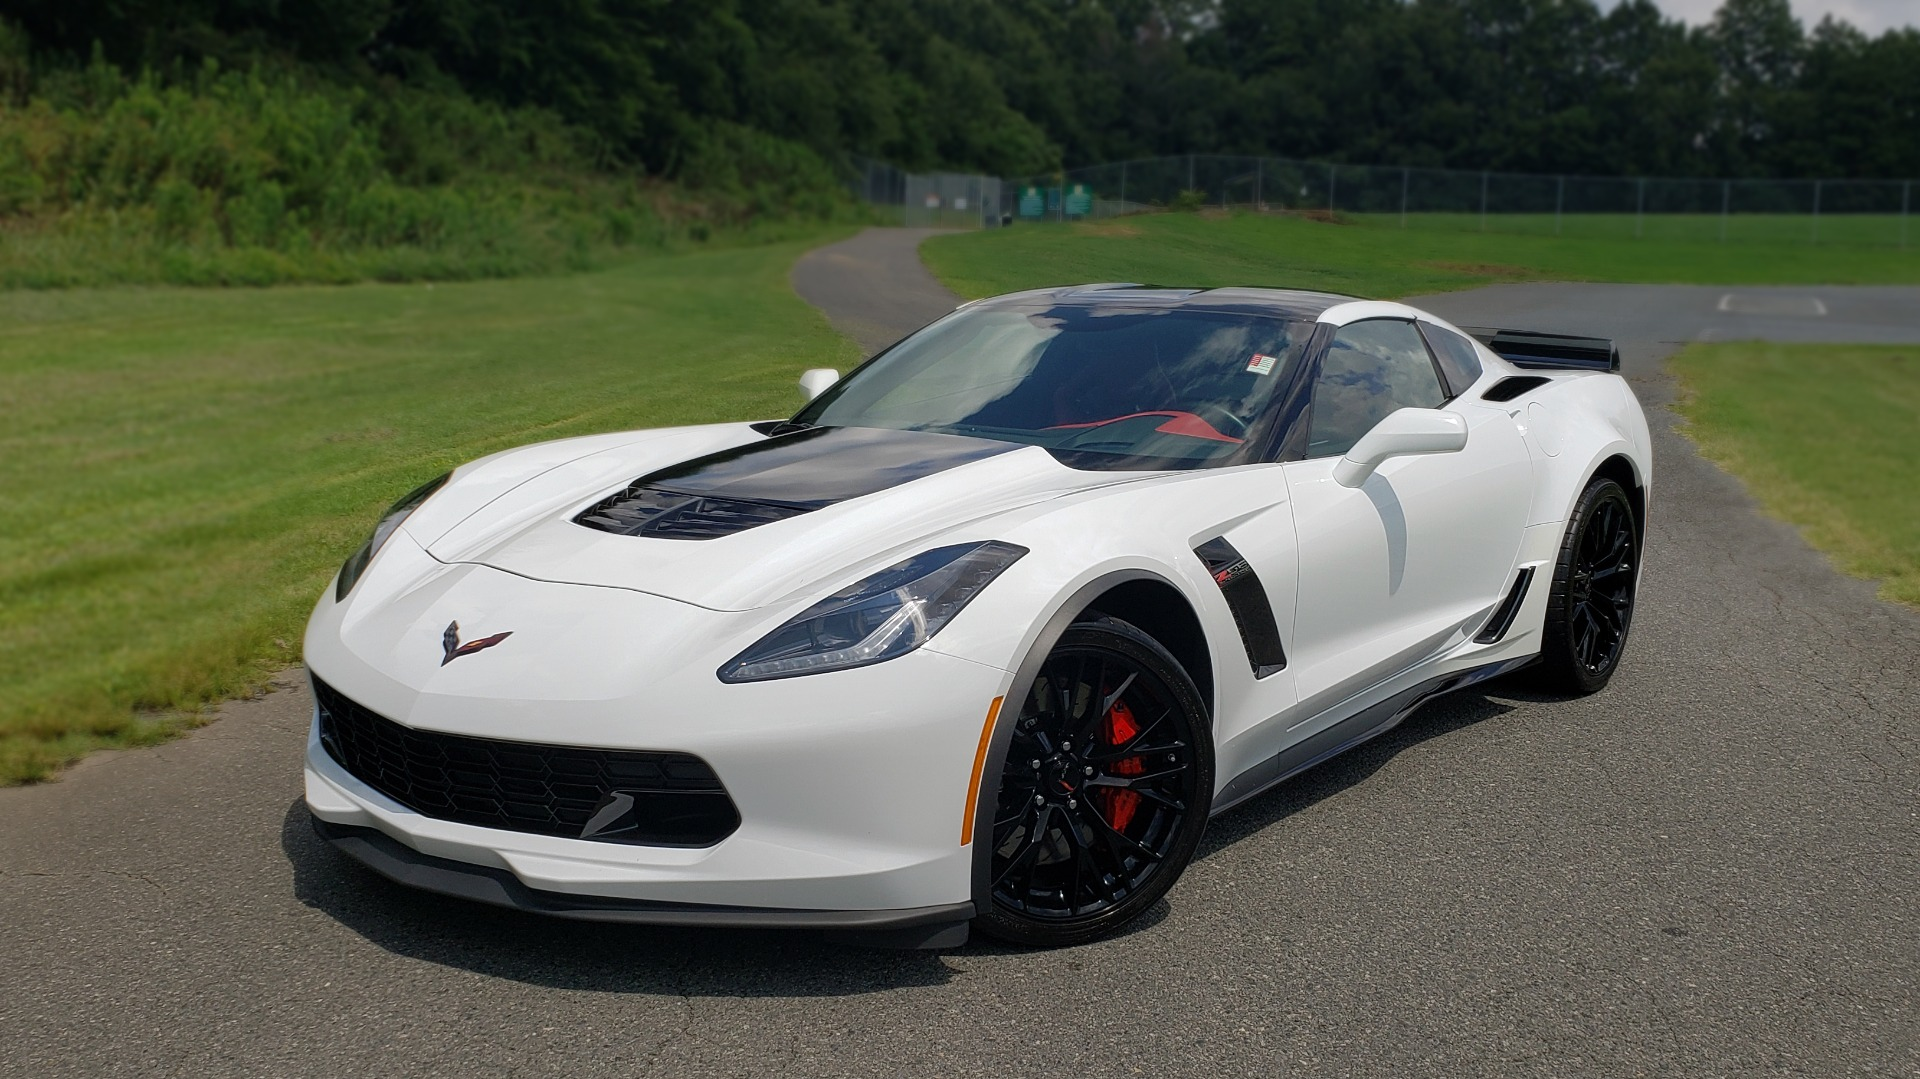 Used 2015 Chevrolet CORVETTE Z06 3LZ / 6.2L SUPERCHARGED 650HP / NAV / BOSE / REARVIEW for sale Sold at Formula Imports in Charlotte NC 28227 1